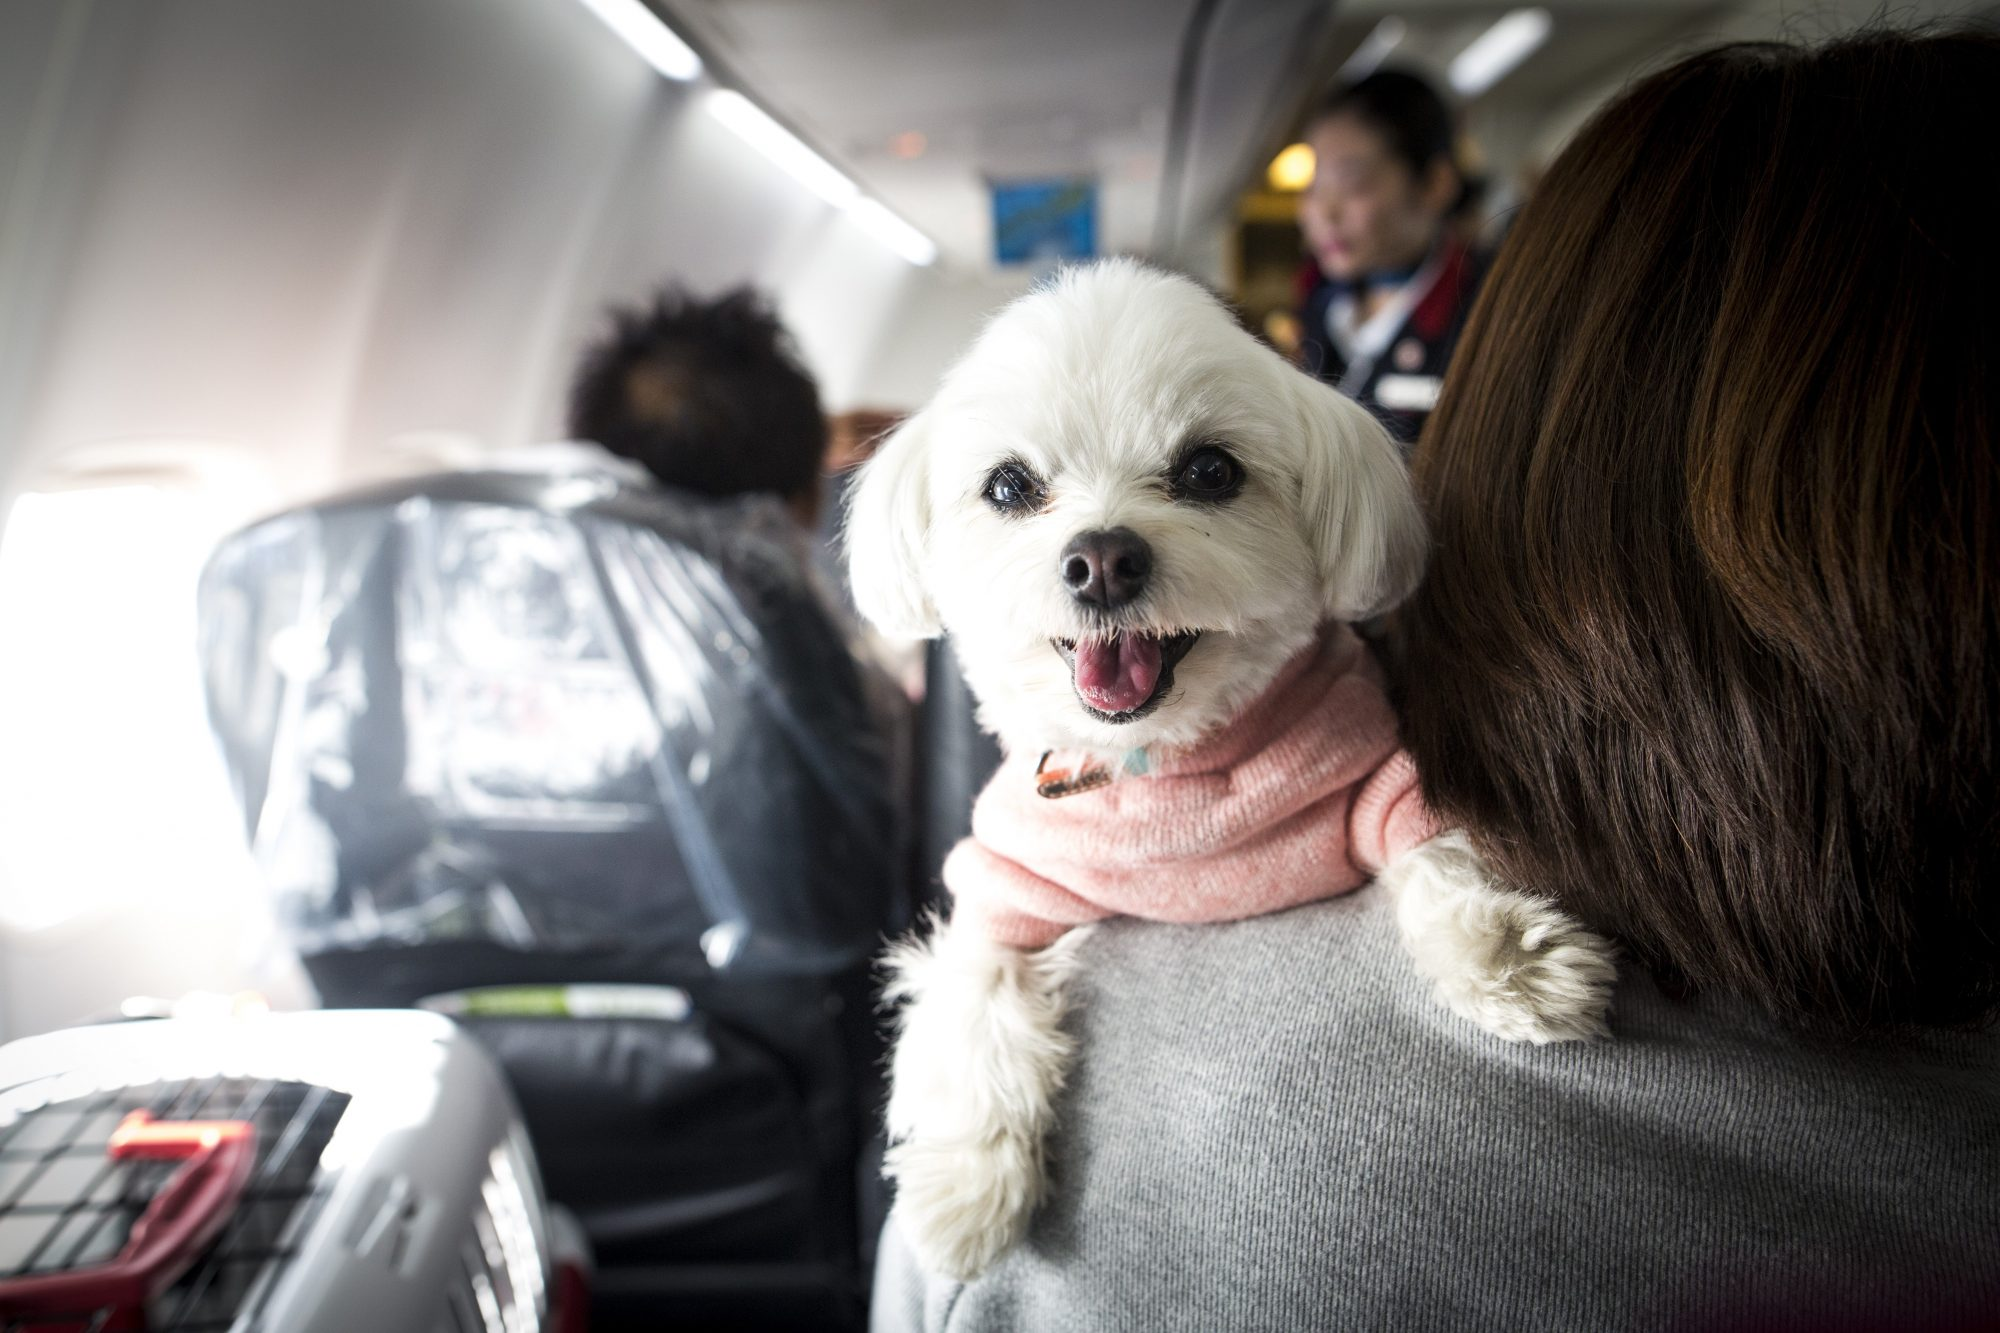 Dogs and their owners allowed to sit together on flight